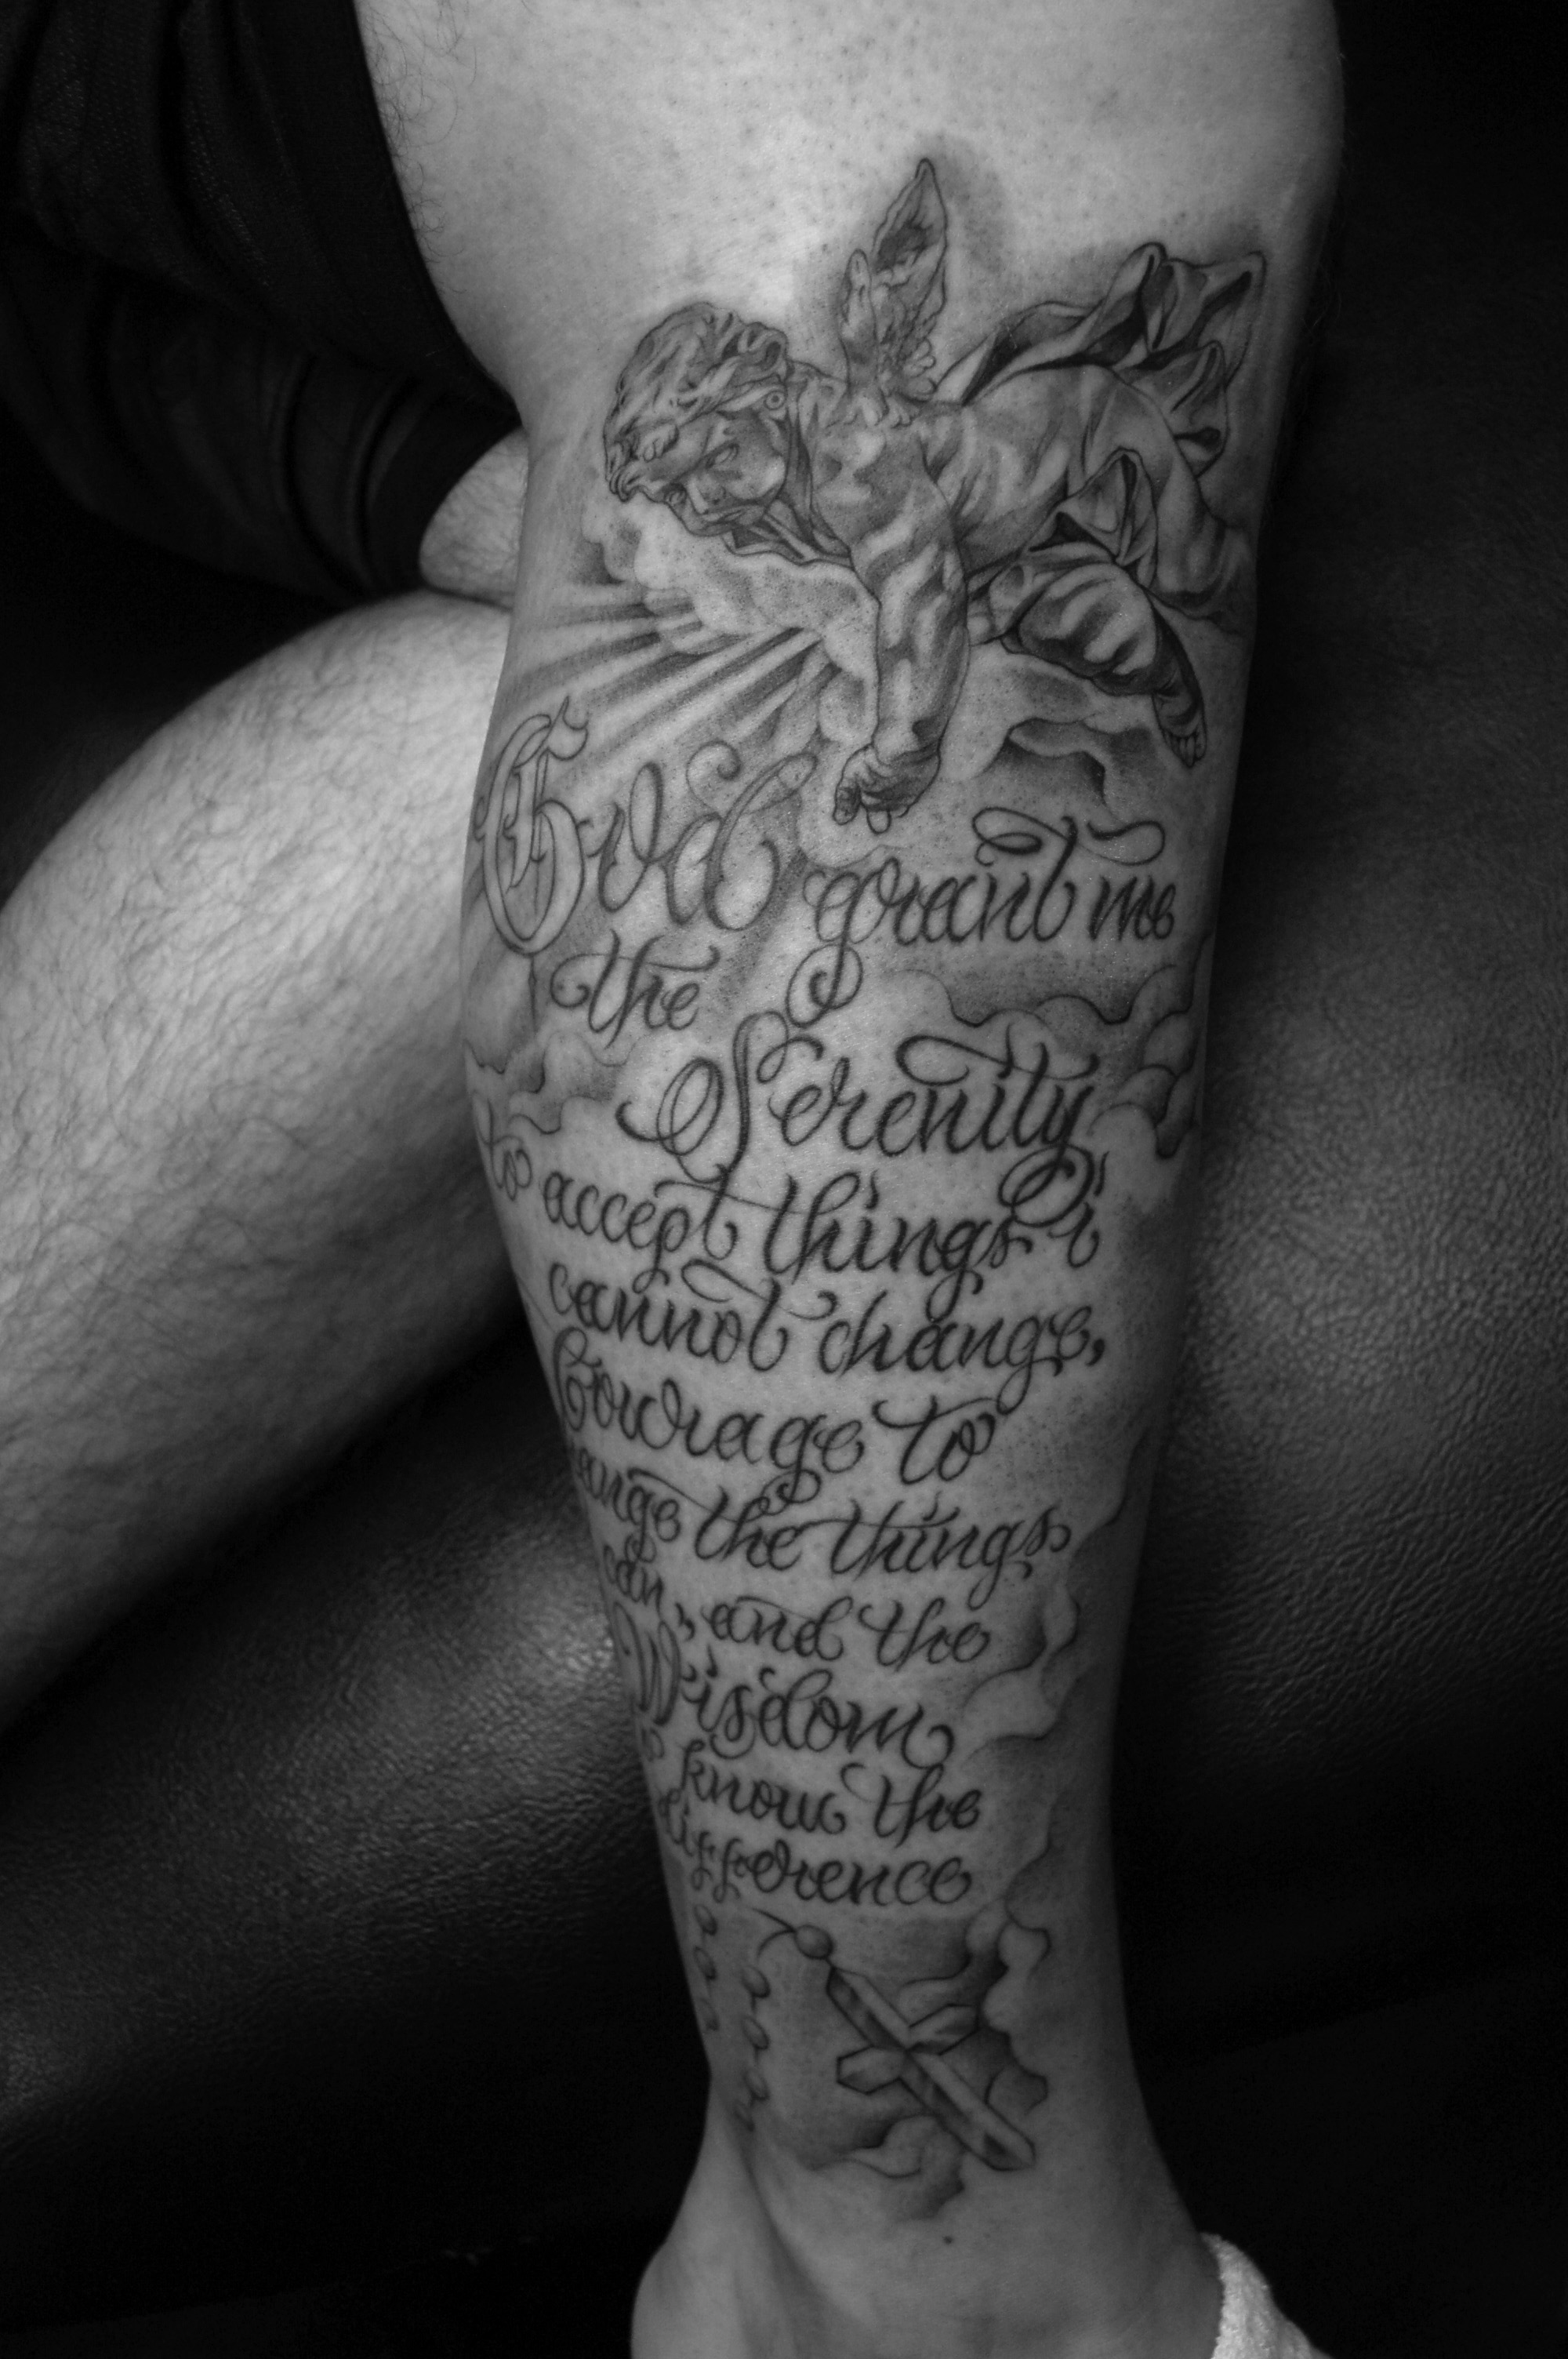 serenity prayer tattoos designs ideas and meaning tattoos for you. Black Bedroom Furniture Sets. Home Design Ideas